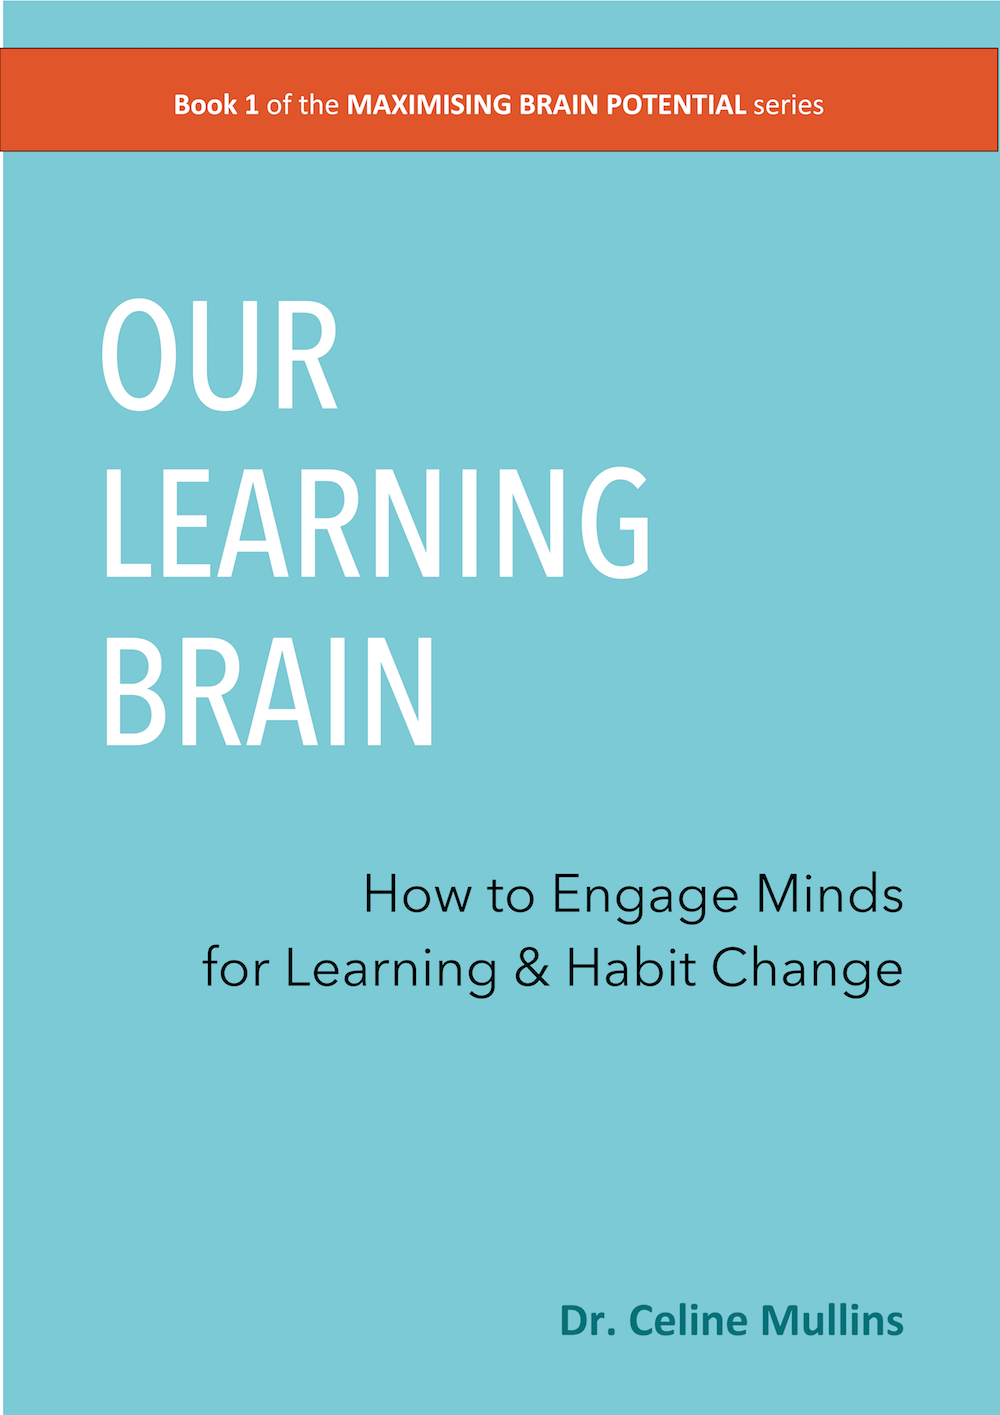 BUY OUR NEW BOOK<br>Our Learning Brain - How to Engage Minds for Learning by Dr Celine Mullins. To download the first chapter and learn more about Our Learning Brain - click here